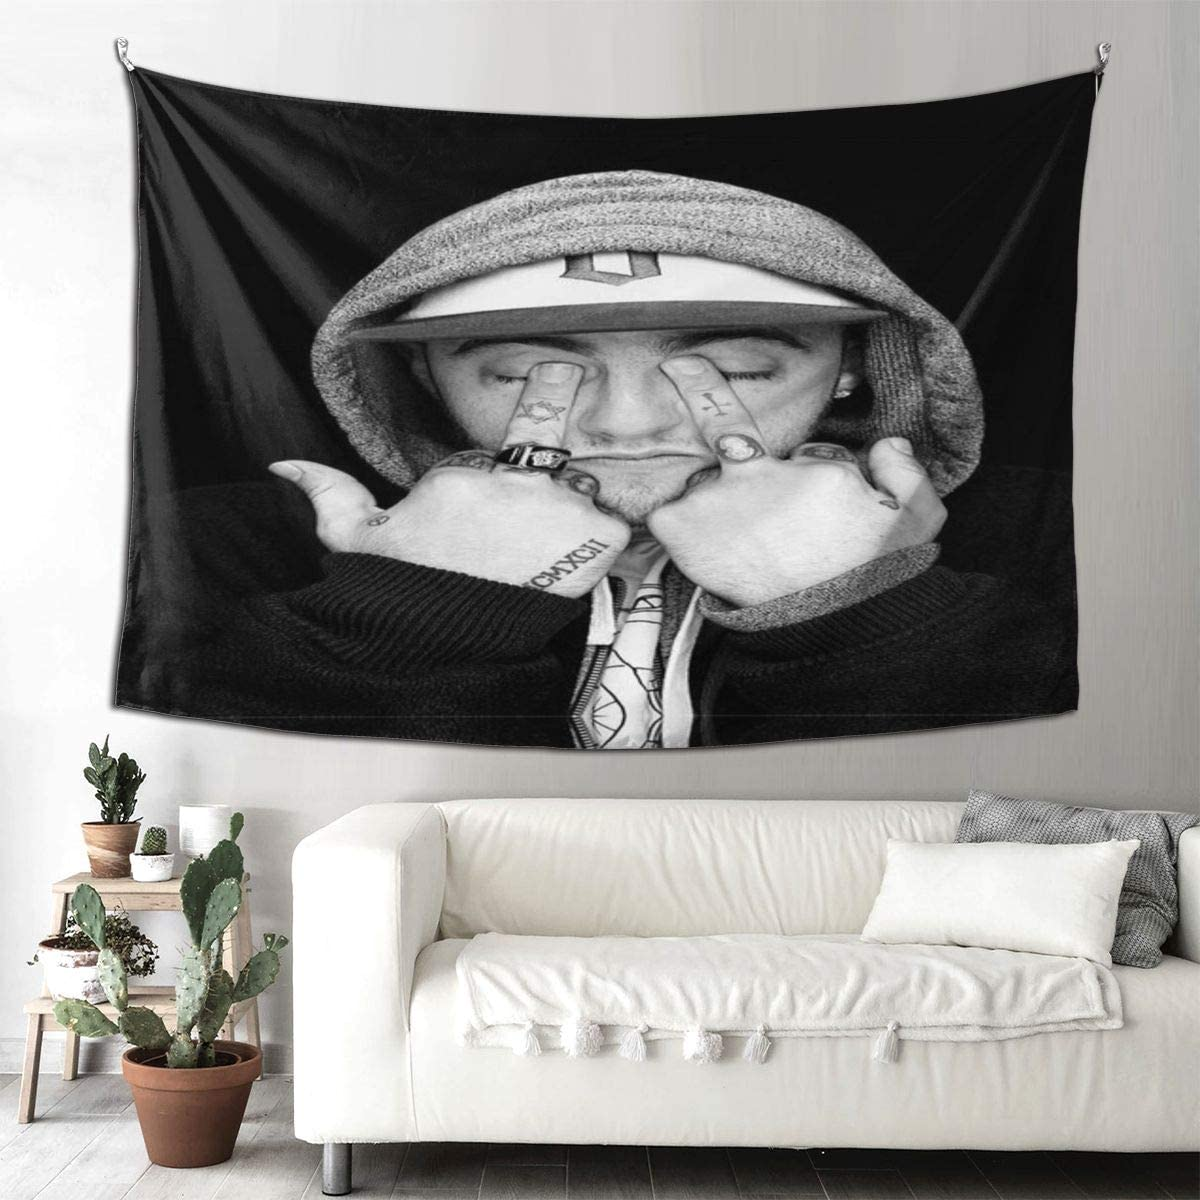 youme Miller Playbill Wall Hanging Tapestry Origal Design Wall Decor Art Style for Bedrooms